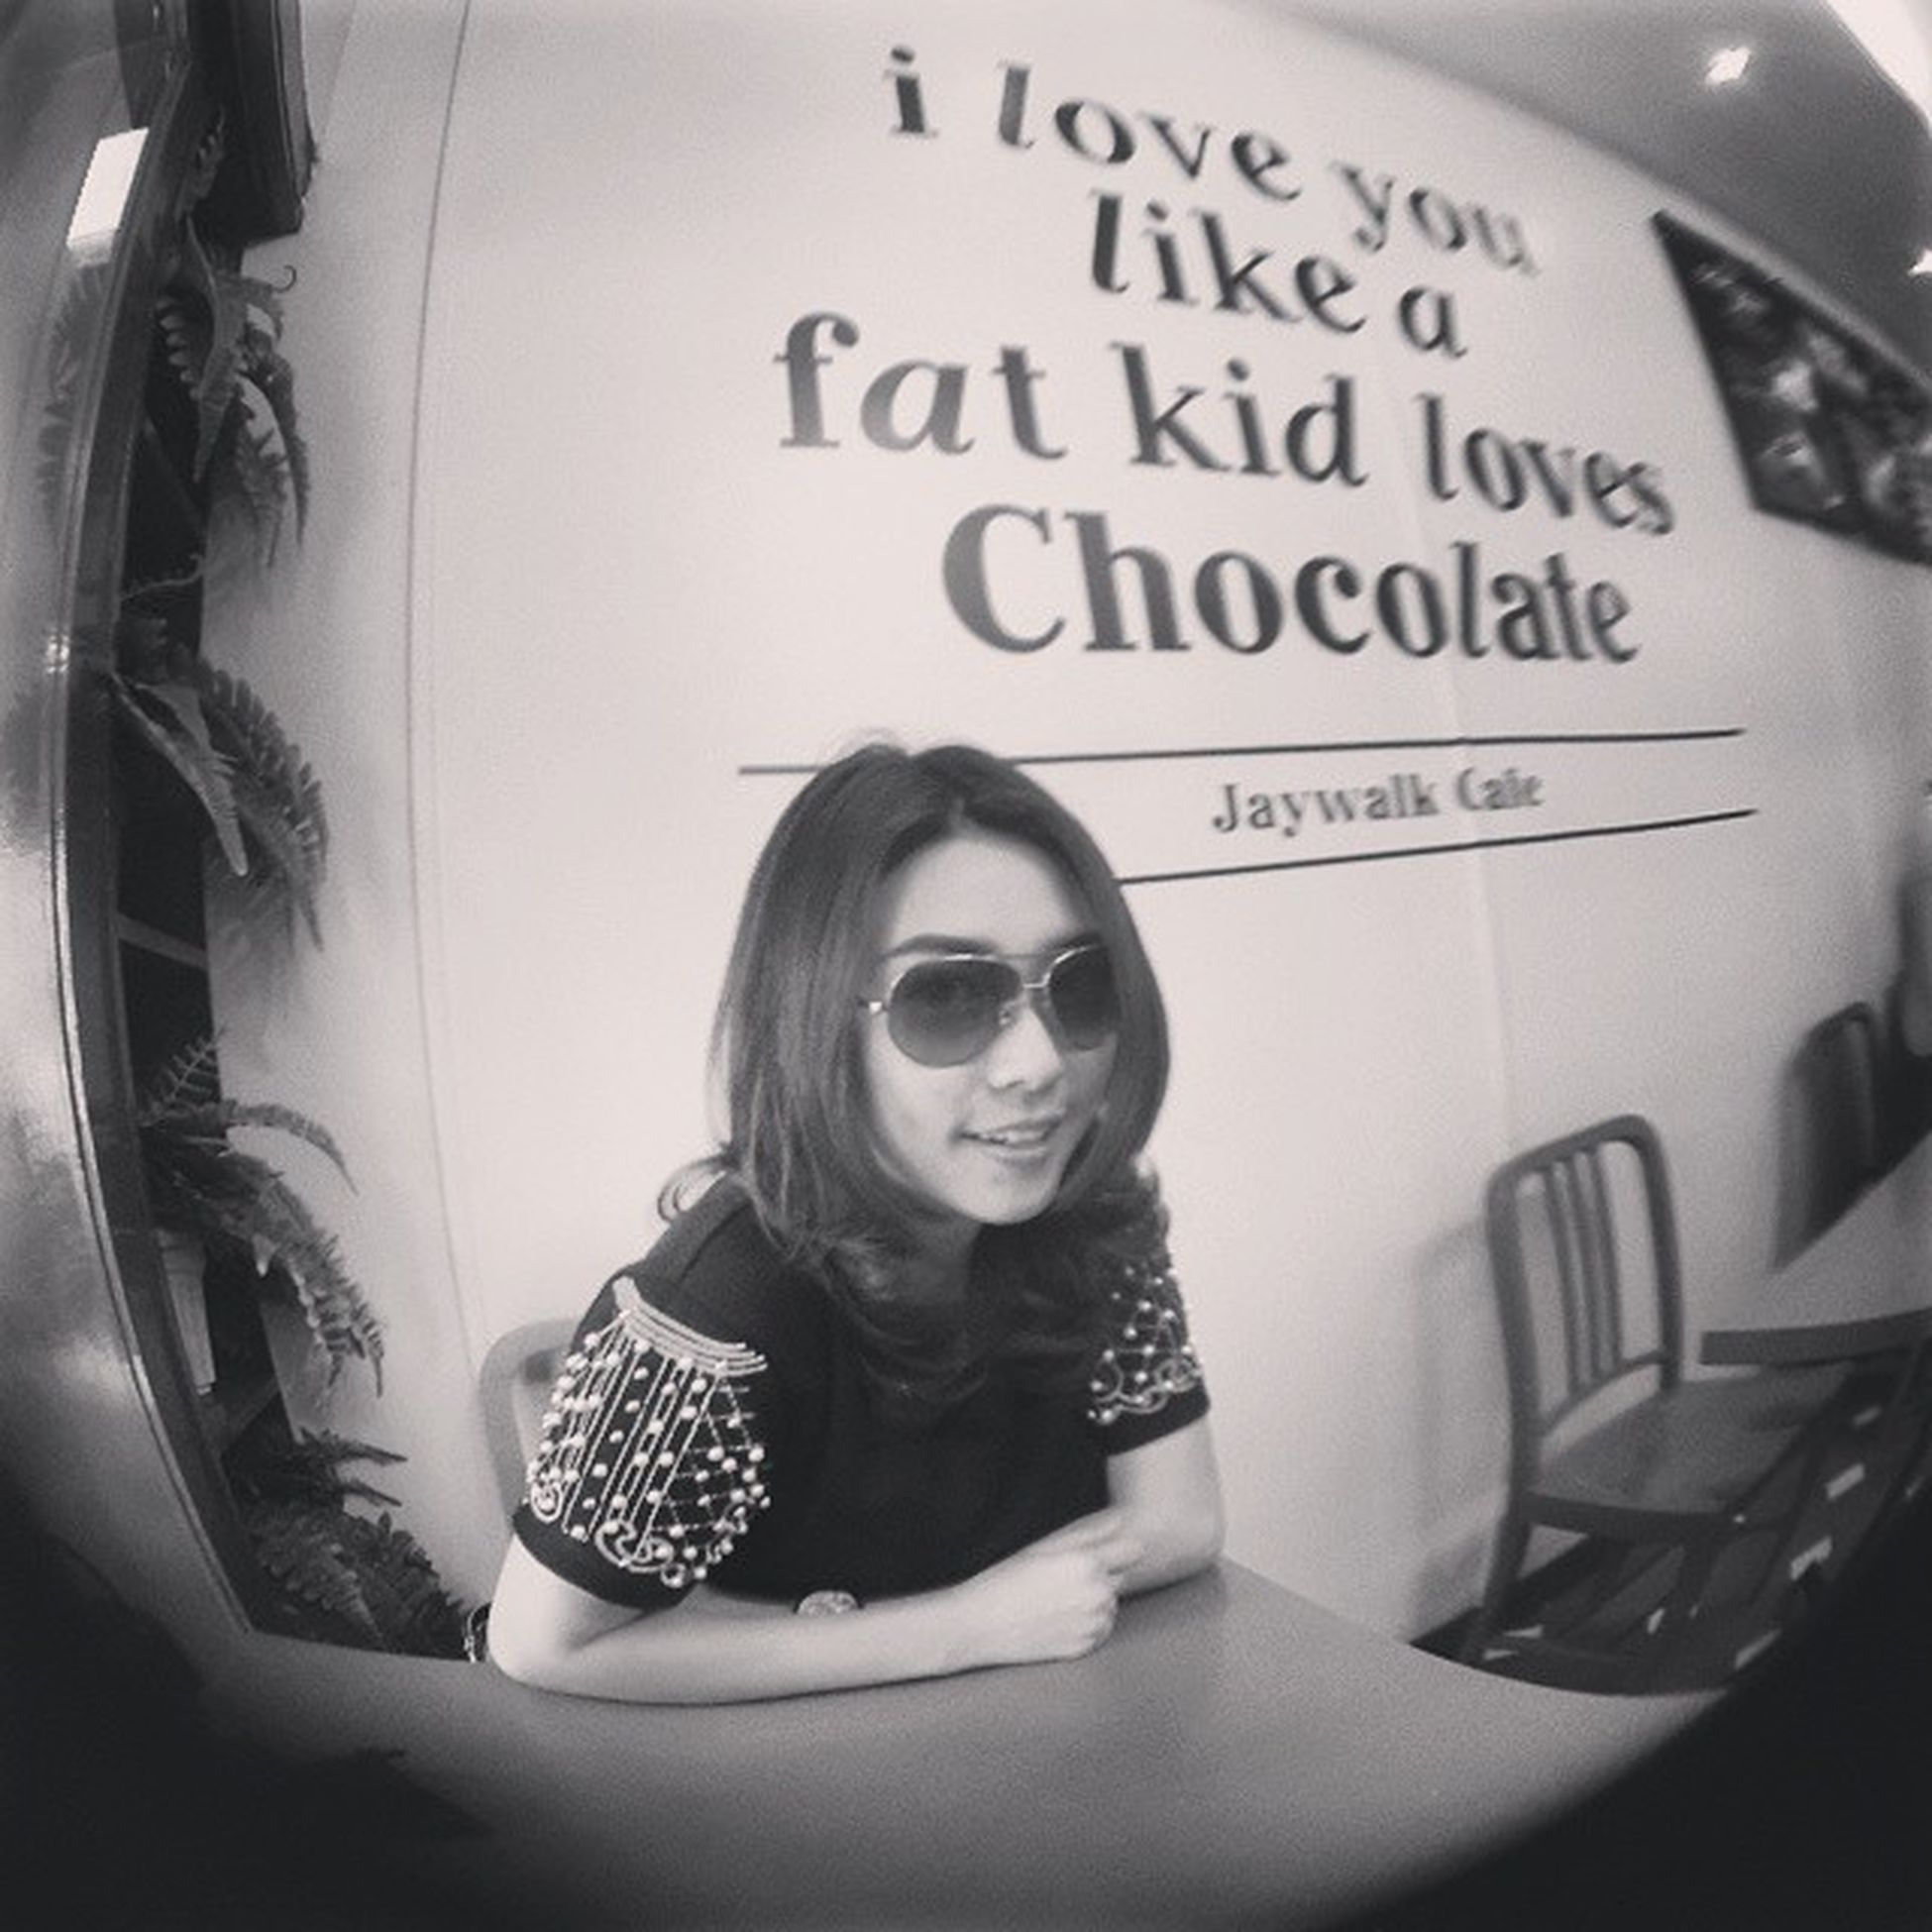 Love me like a fat kid loves Chocolate ? Jaywalk Cafe 我的蚂蚁